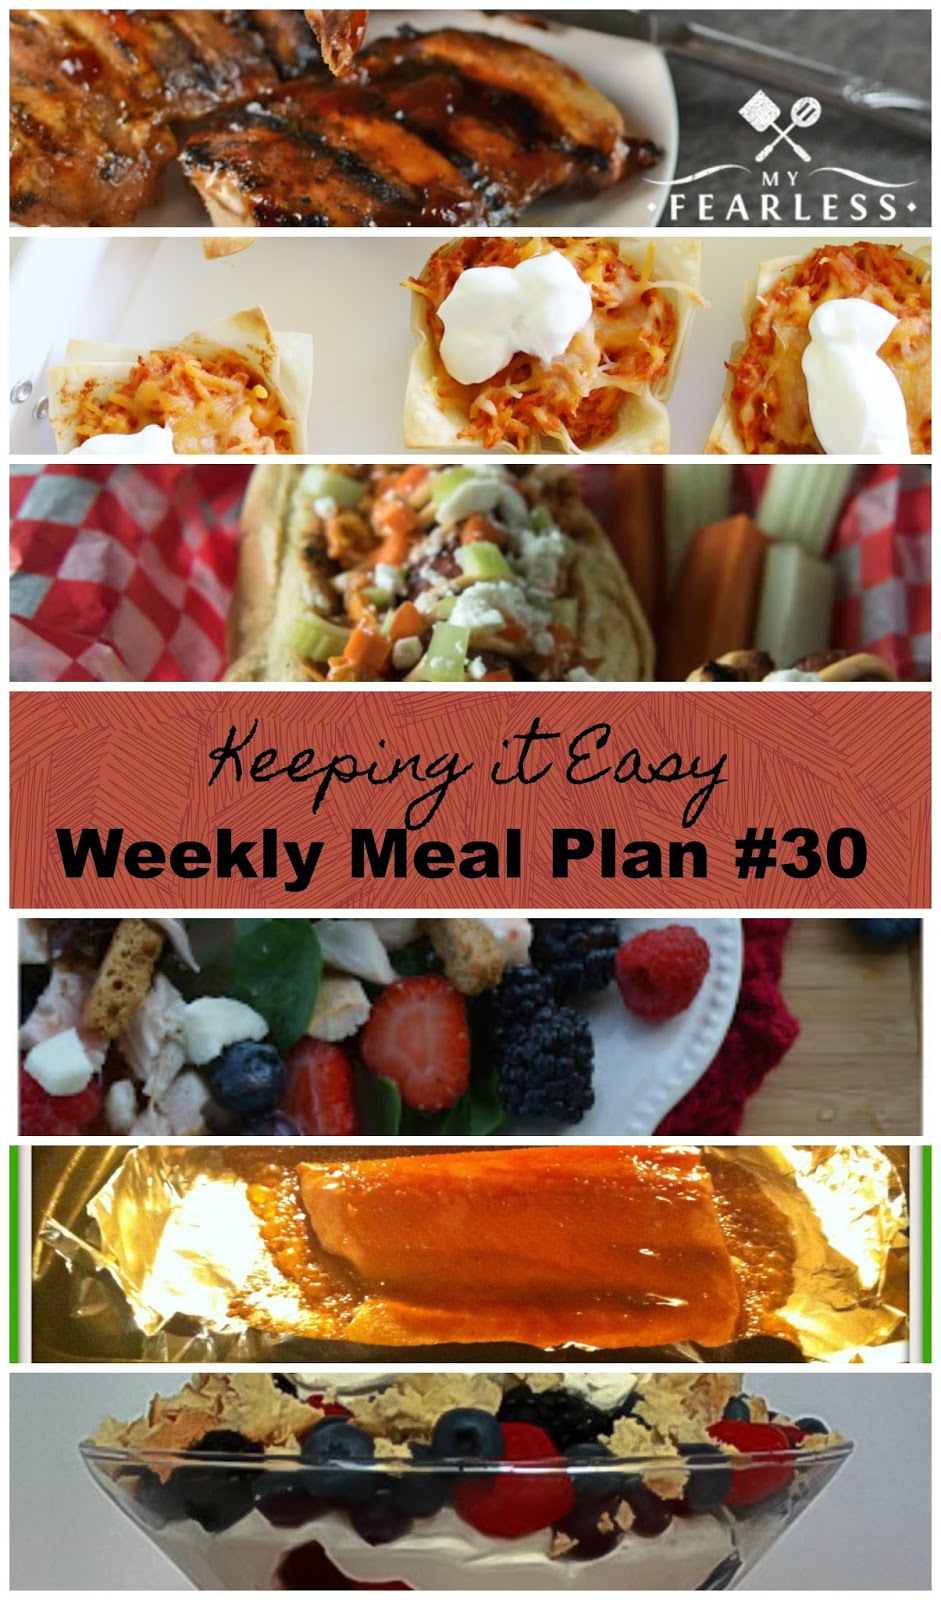 Easy Weekly Meal Plan #30 from My Fearless Kitchen. This week's meal plan includes Cascade Scramble, Honey-BBQ Grilled Chicken Thighs, Chicken Taco Cups, Buffalo Hot Dogs, Berry Chicken Salad, Brown Sugar Baked Salmon, and Berry Martinis.